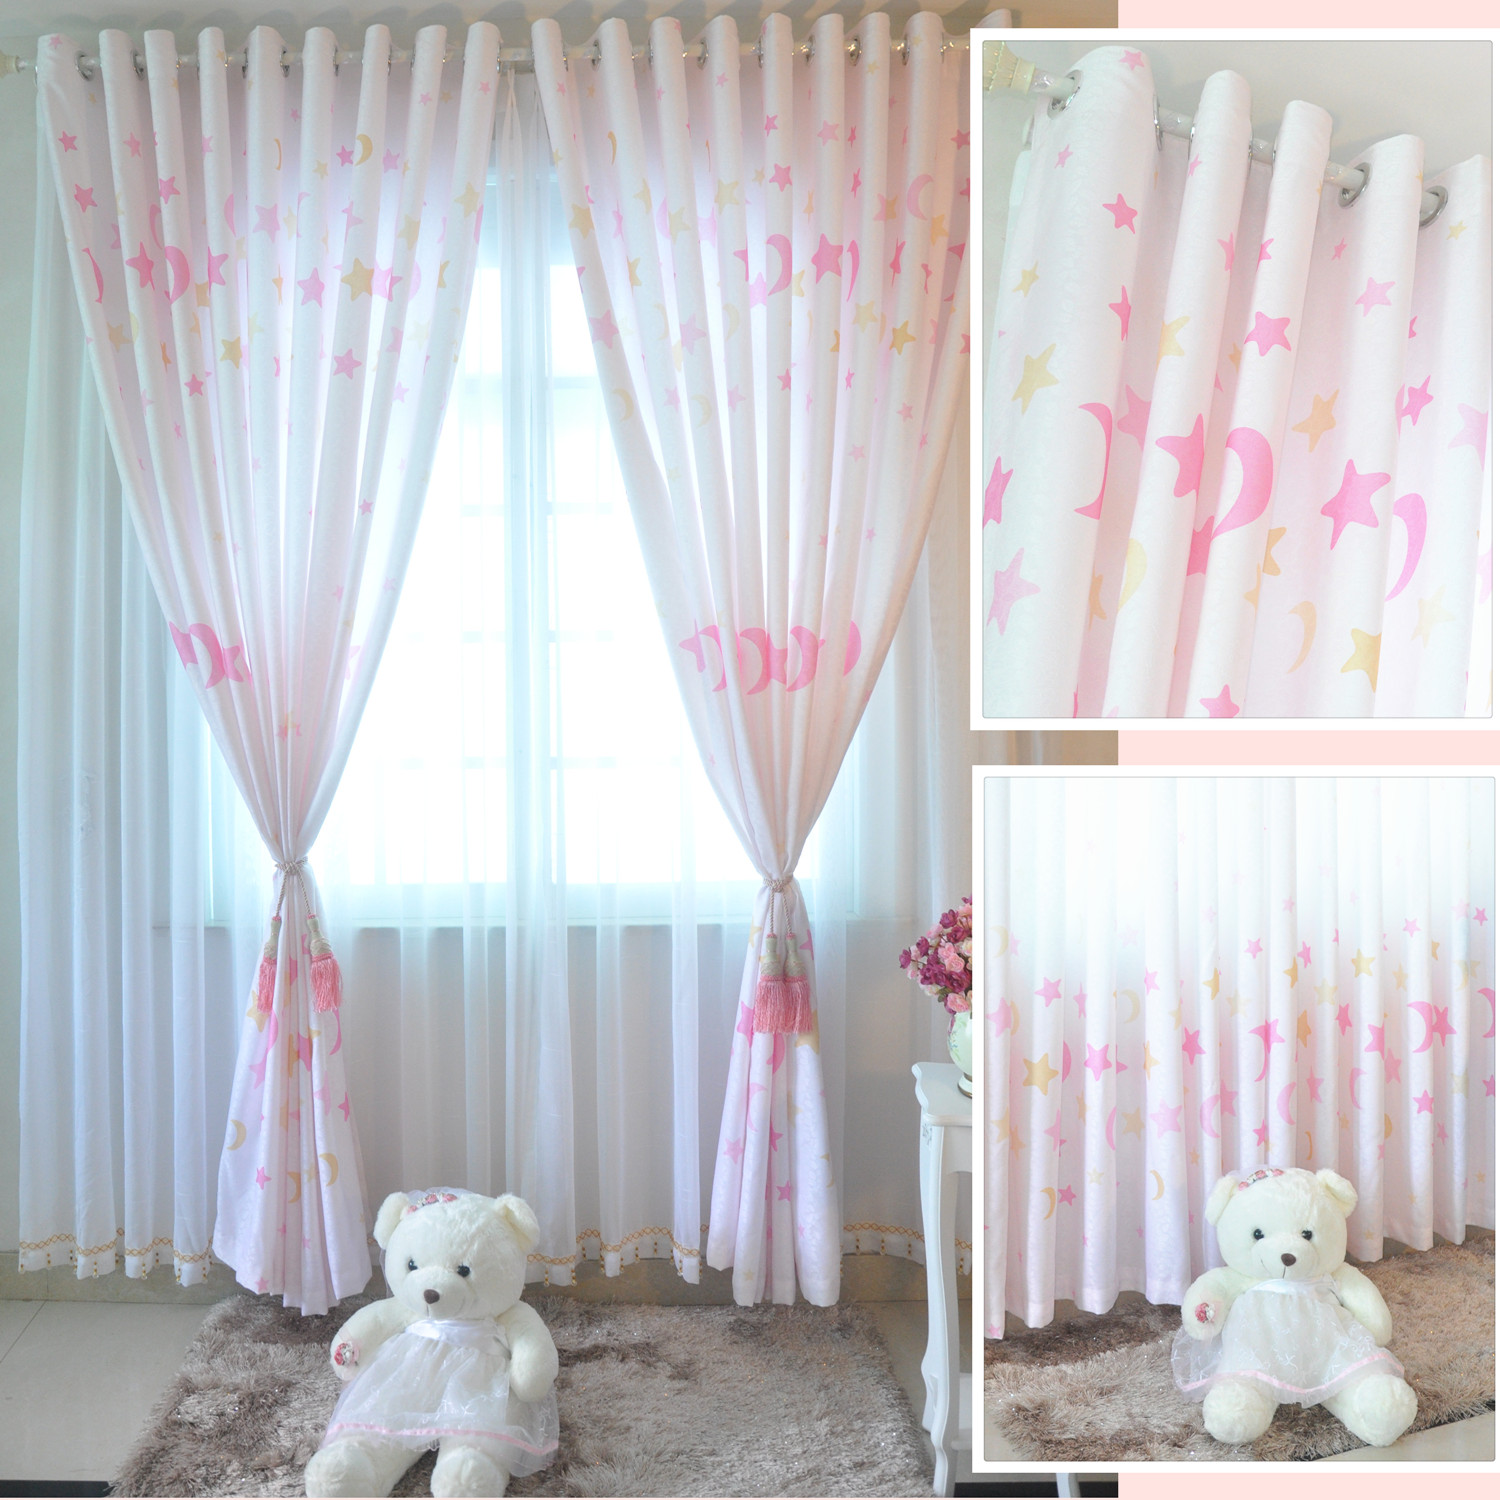 Curtain girl child princess real rustic finished products moon and stars